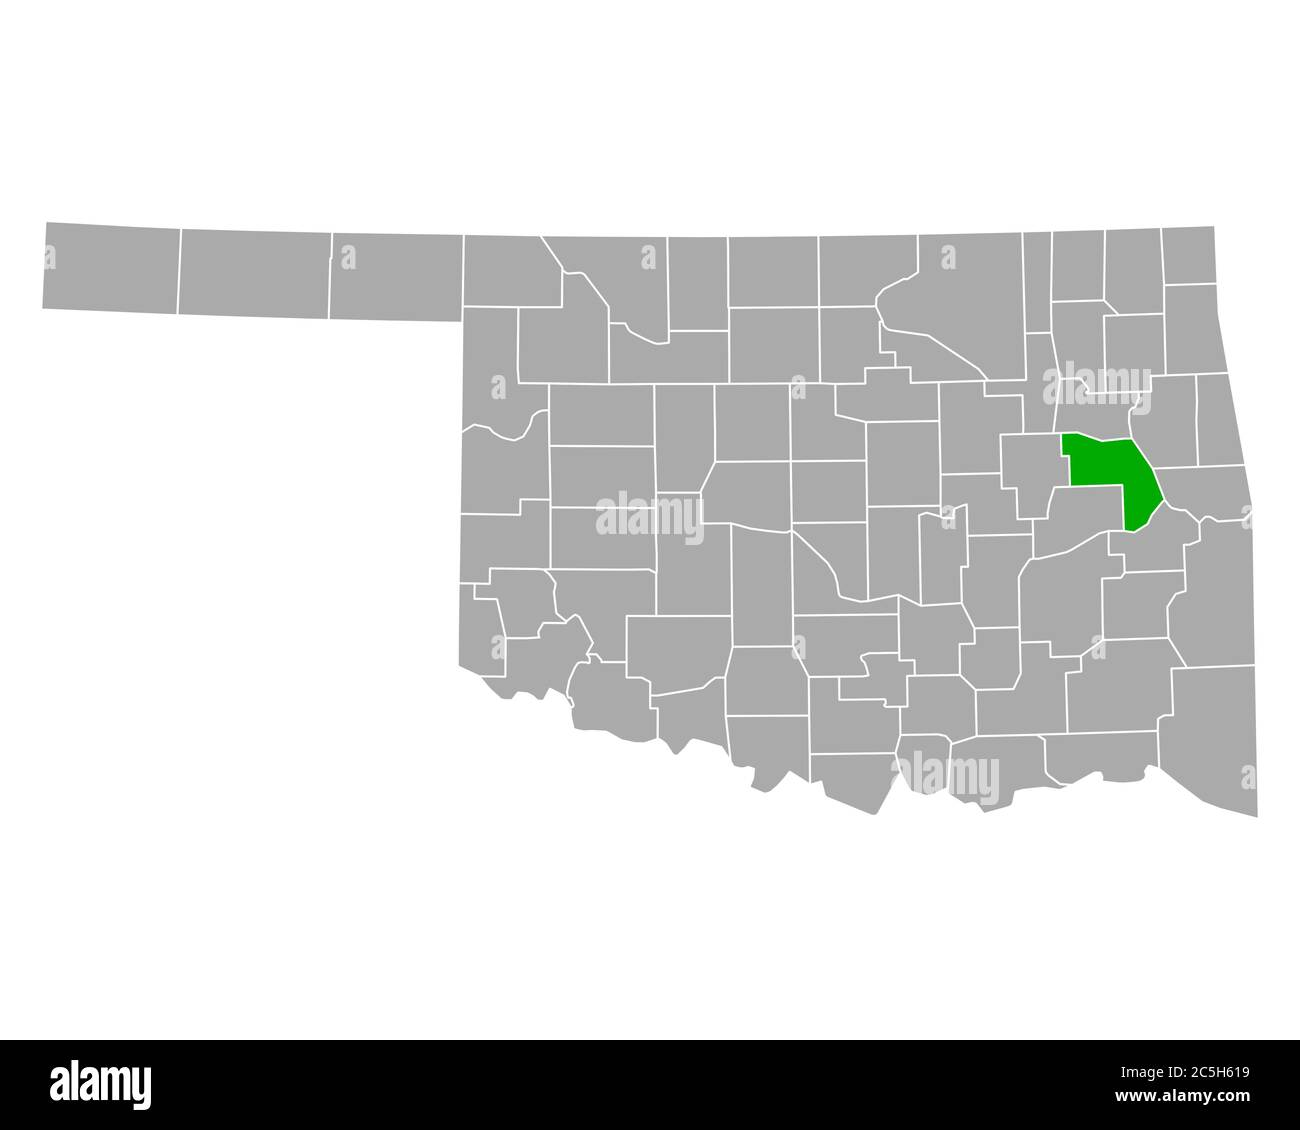 Map of Muskogee in Oklahoma Stock Photo